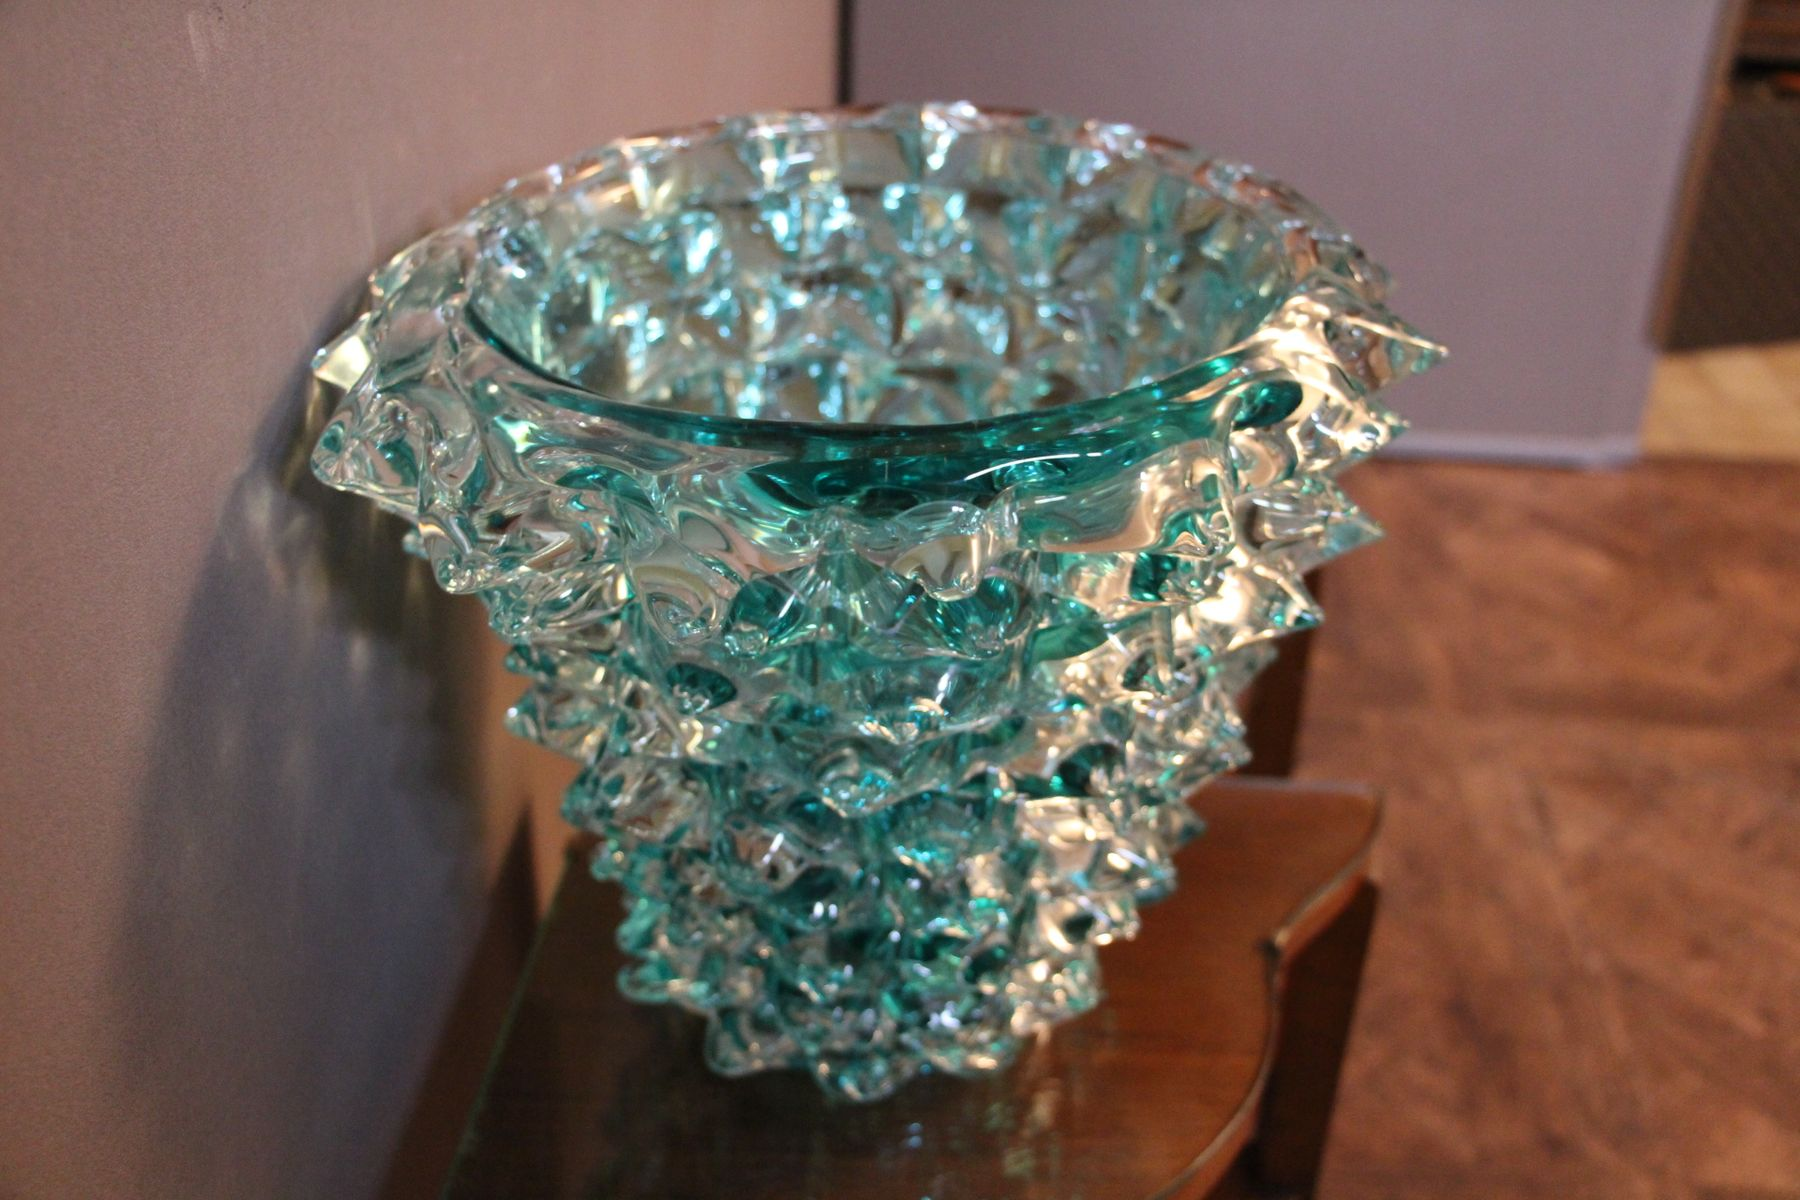 Turquoise Blue Vase In Murano Glass With Spikes Decor 1980s For Sale At Pamono